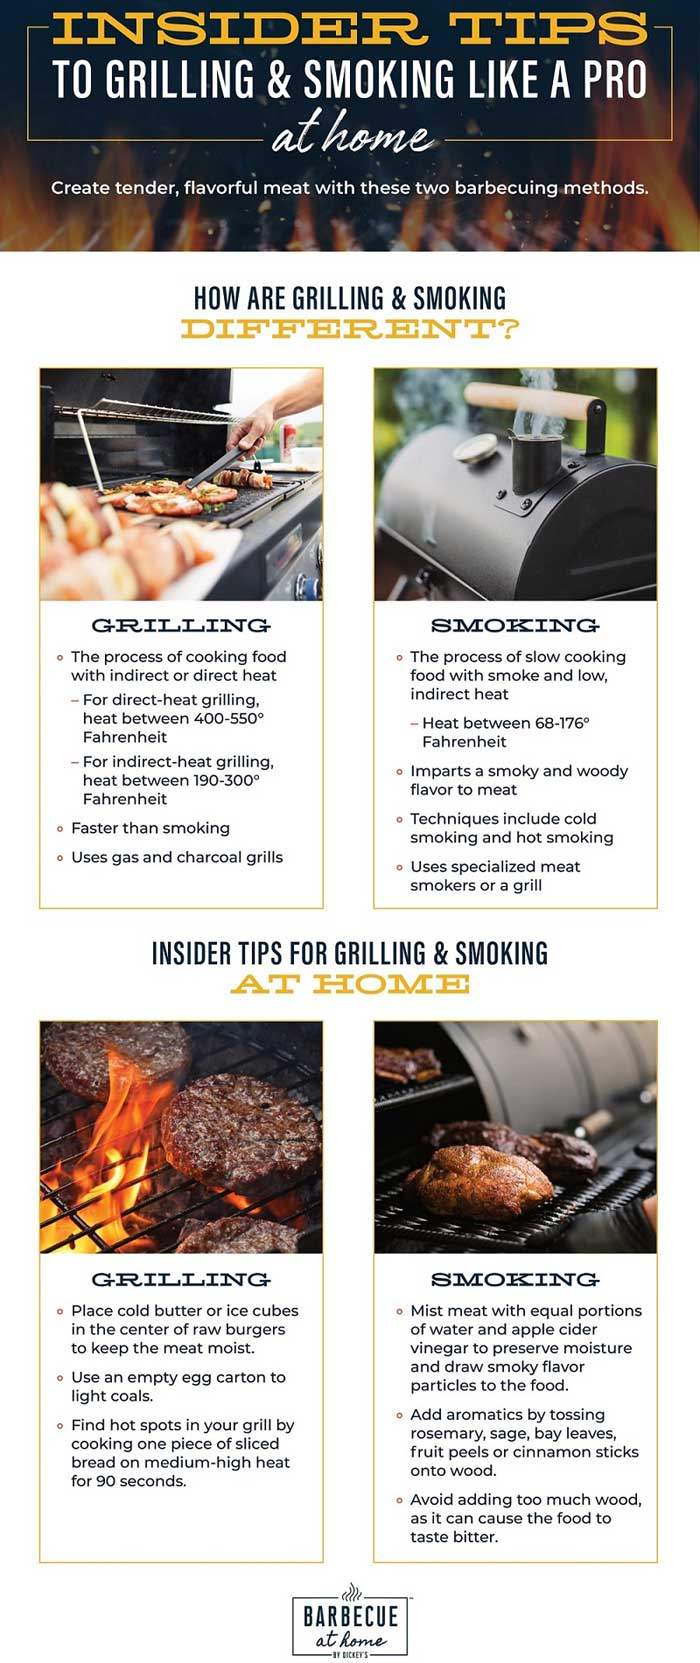 Grilling-like-pro-At-Home-infographic